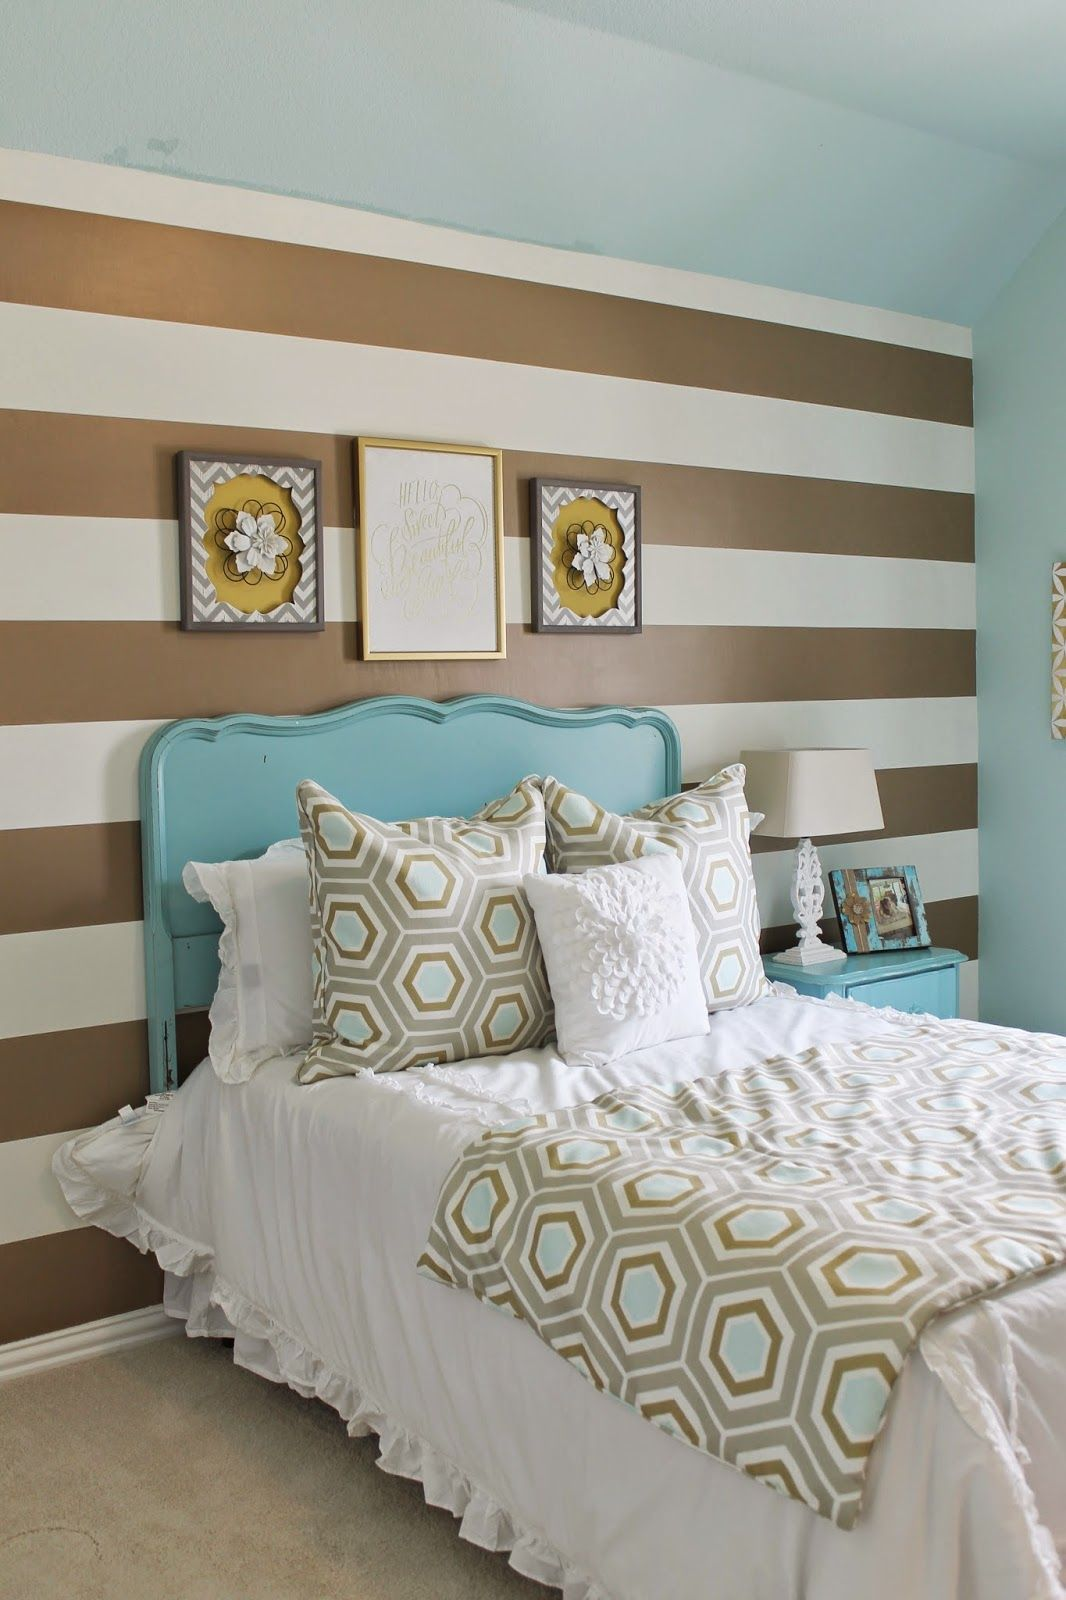 Gray And Turquoise Bedroom. Shabby chic meets glam in this cute teens room  Gold and Turquoise mixed with